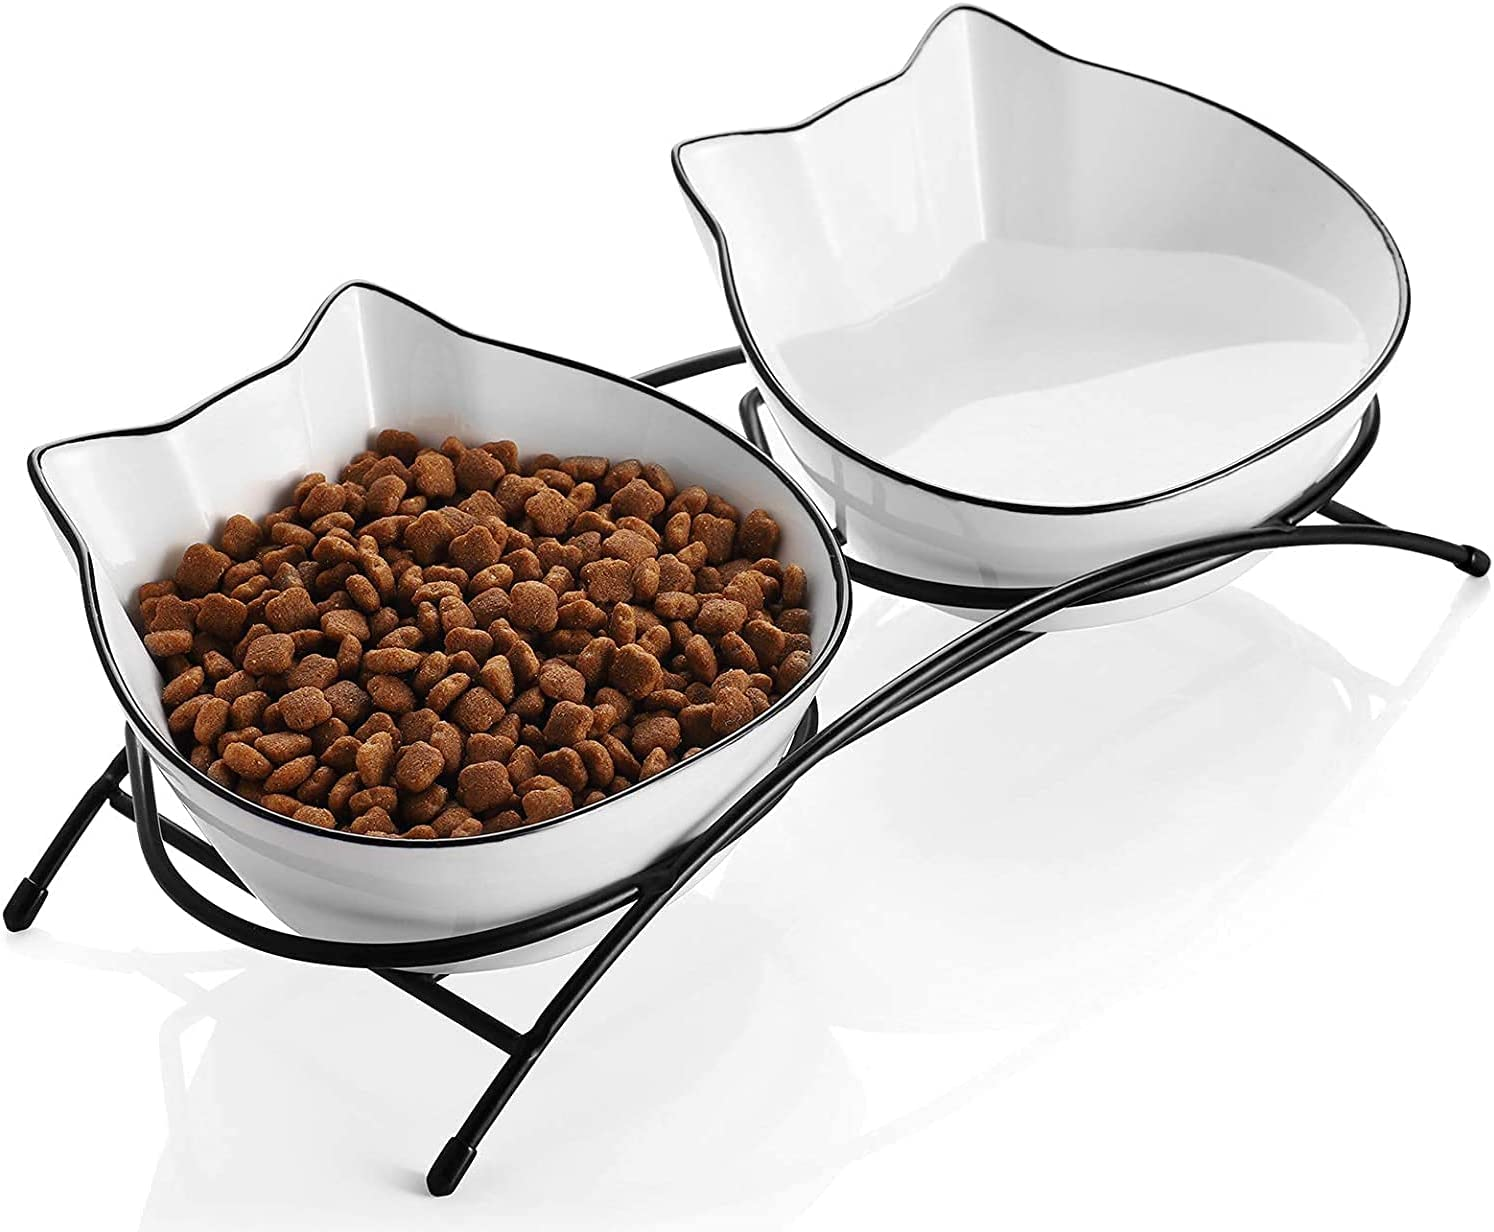 SAMSLE Cat Bowls, Cat Food Bowls for Food and Water, Ceramic Cat Bowl Anti Vomiting,Cat Dishes for Small Cat, Double Pet Dishes for Feeding, 12 Ounces